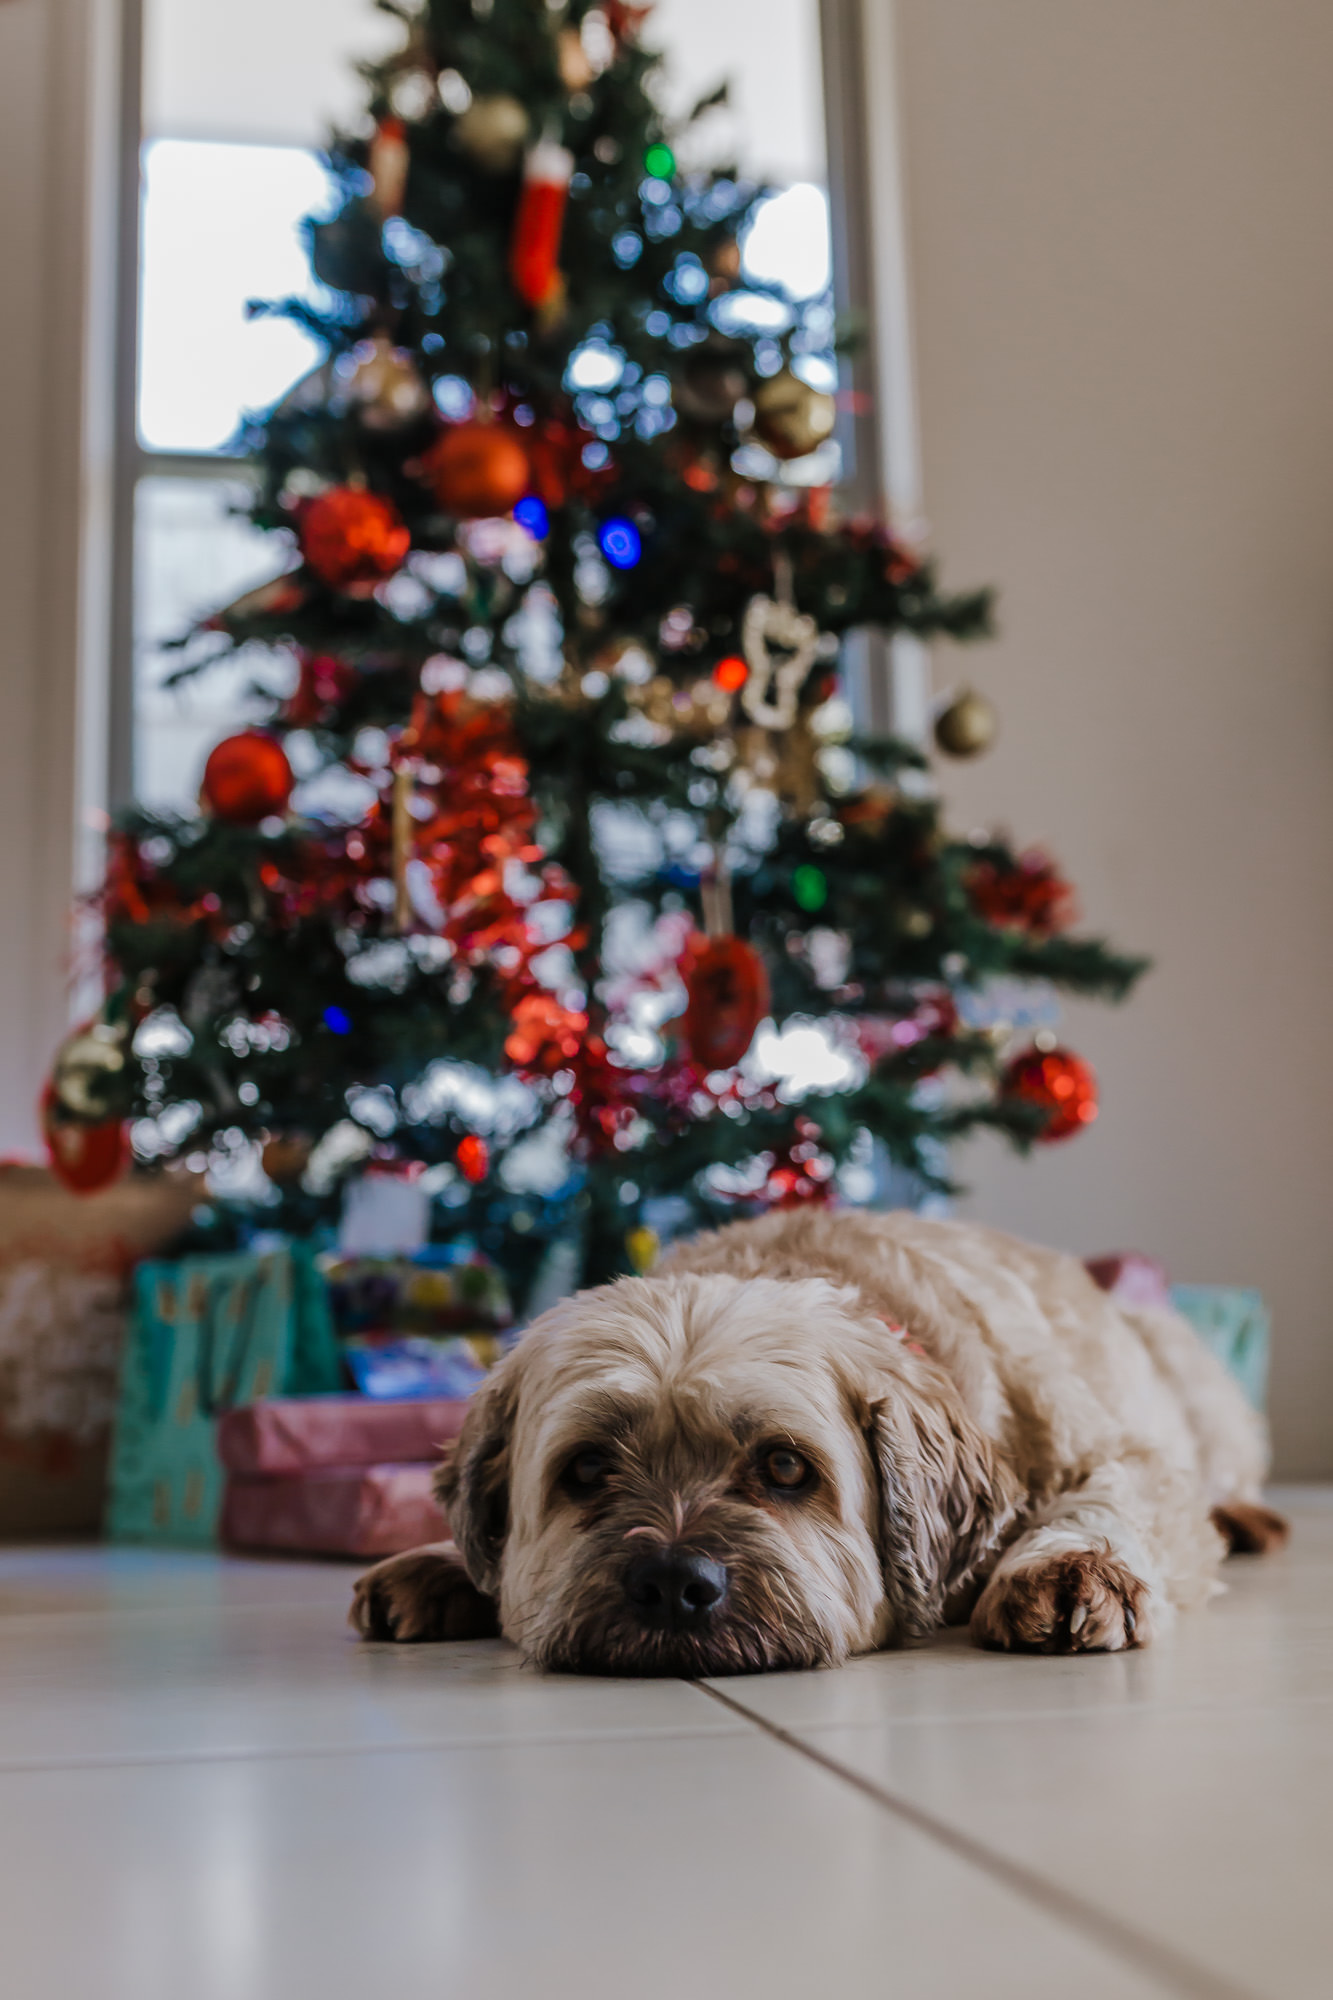 the pet dog takes a nap in front of the Christmas tree after the family have finished decorating